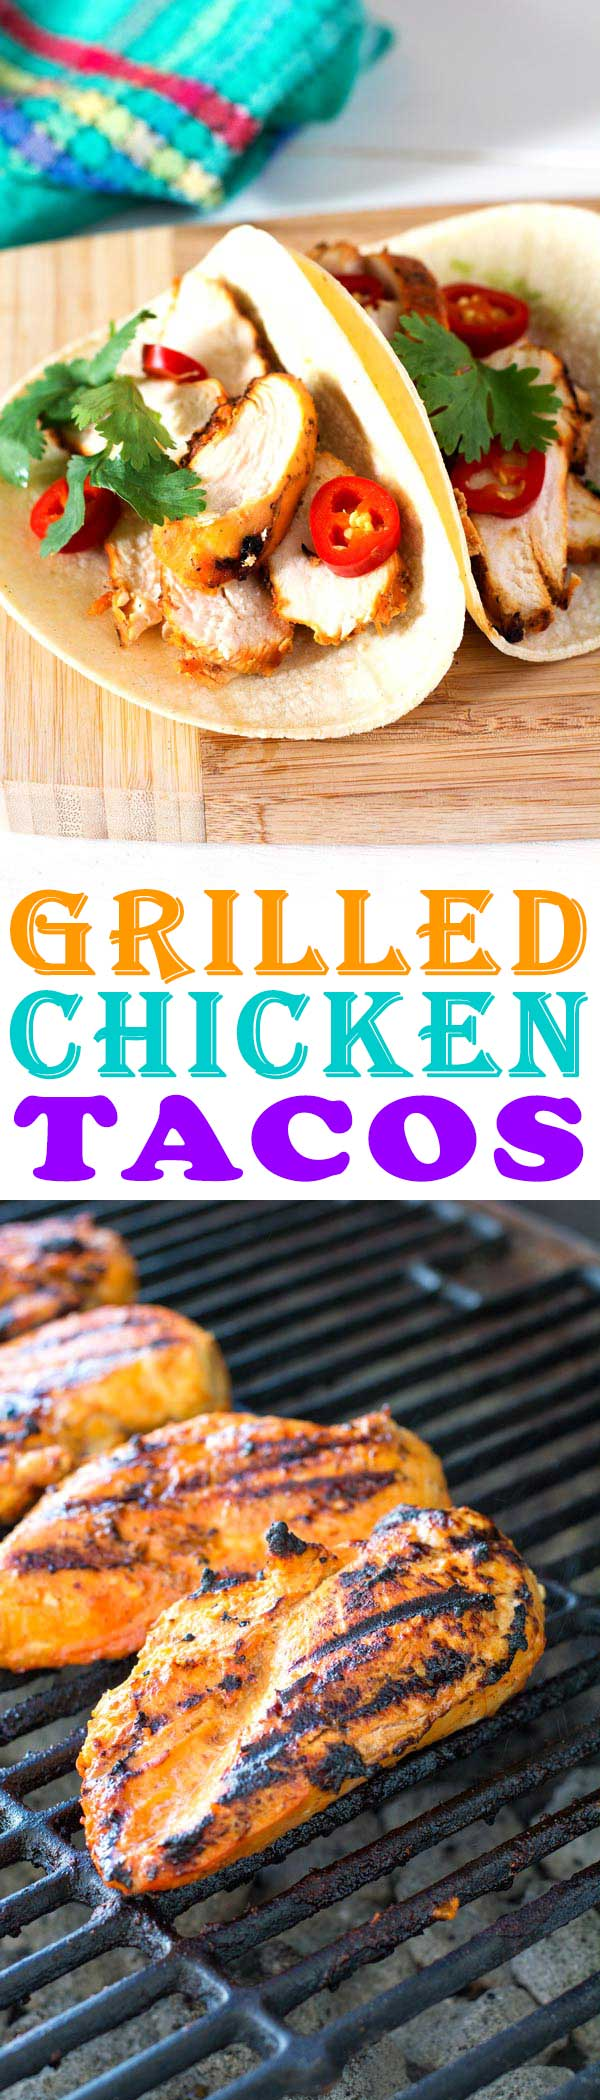 Easy grilled chicken tacos marinade. Chicken taco seasoning for juicy perfection!